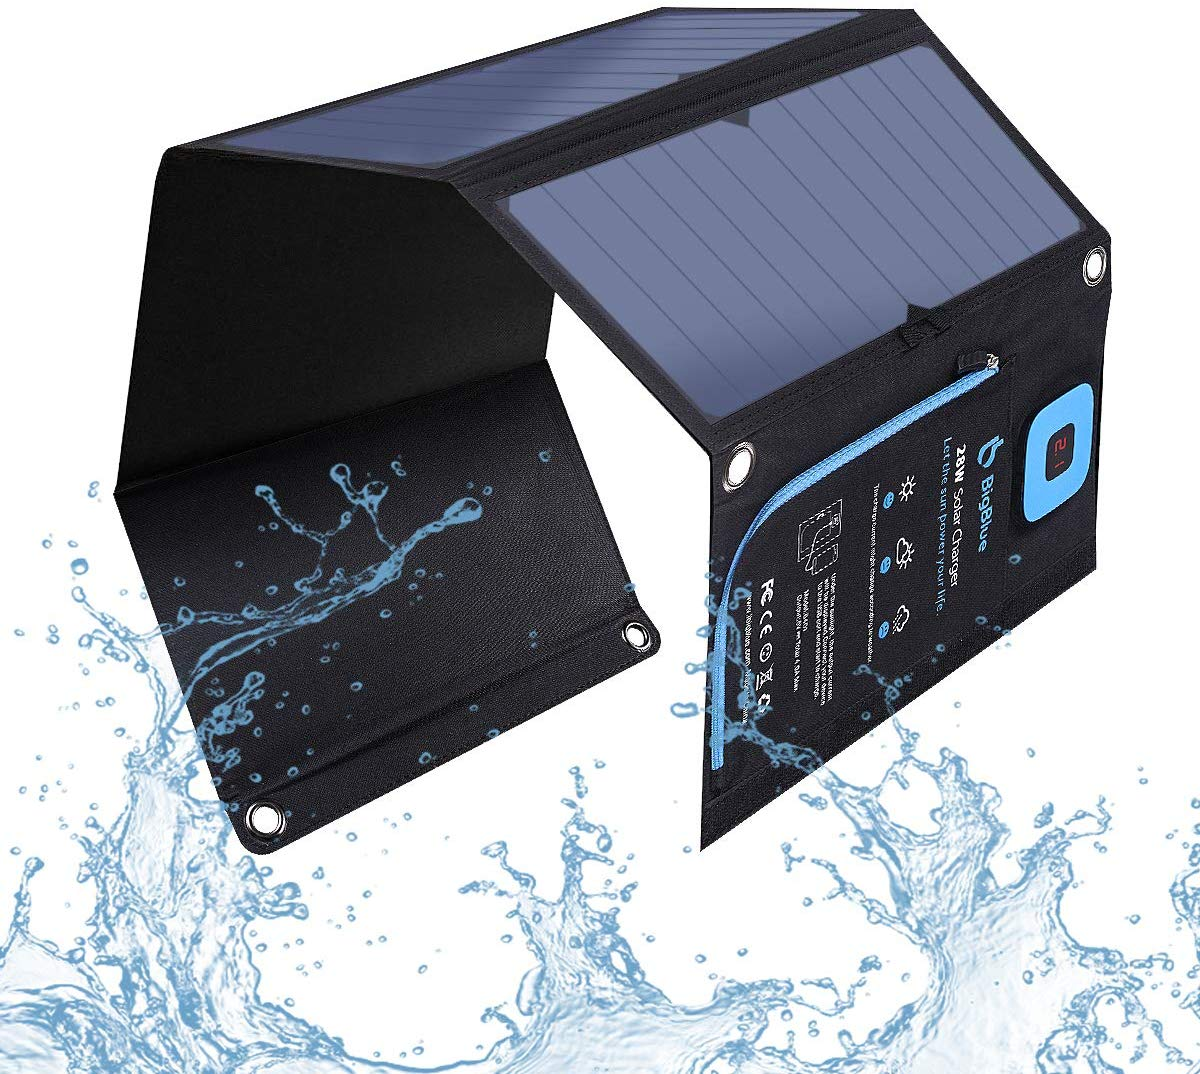 BigBlue 5V 28W Solar Charger with Digital Ammeter, Waterproof Foldable Solar Panels